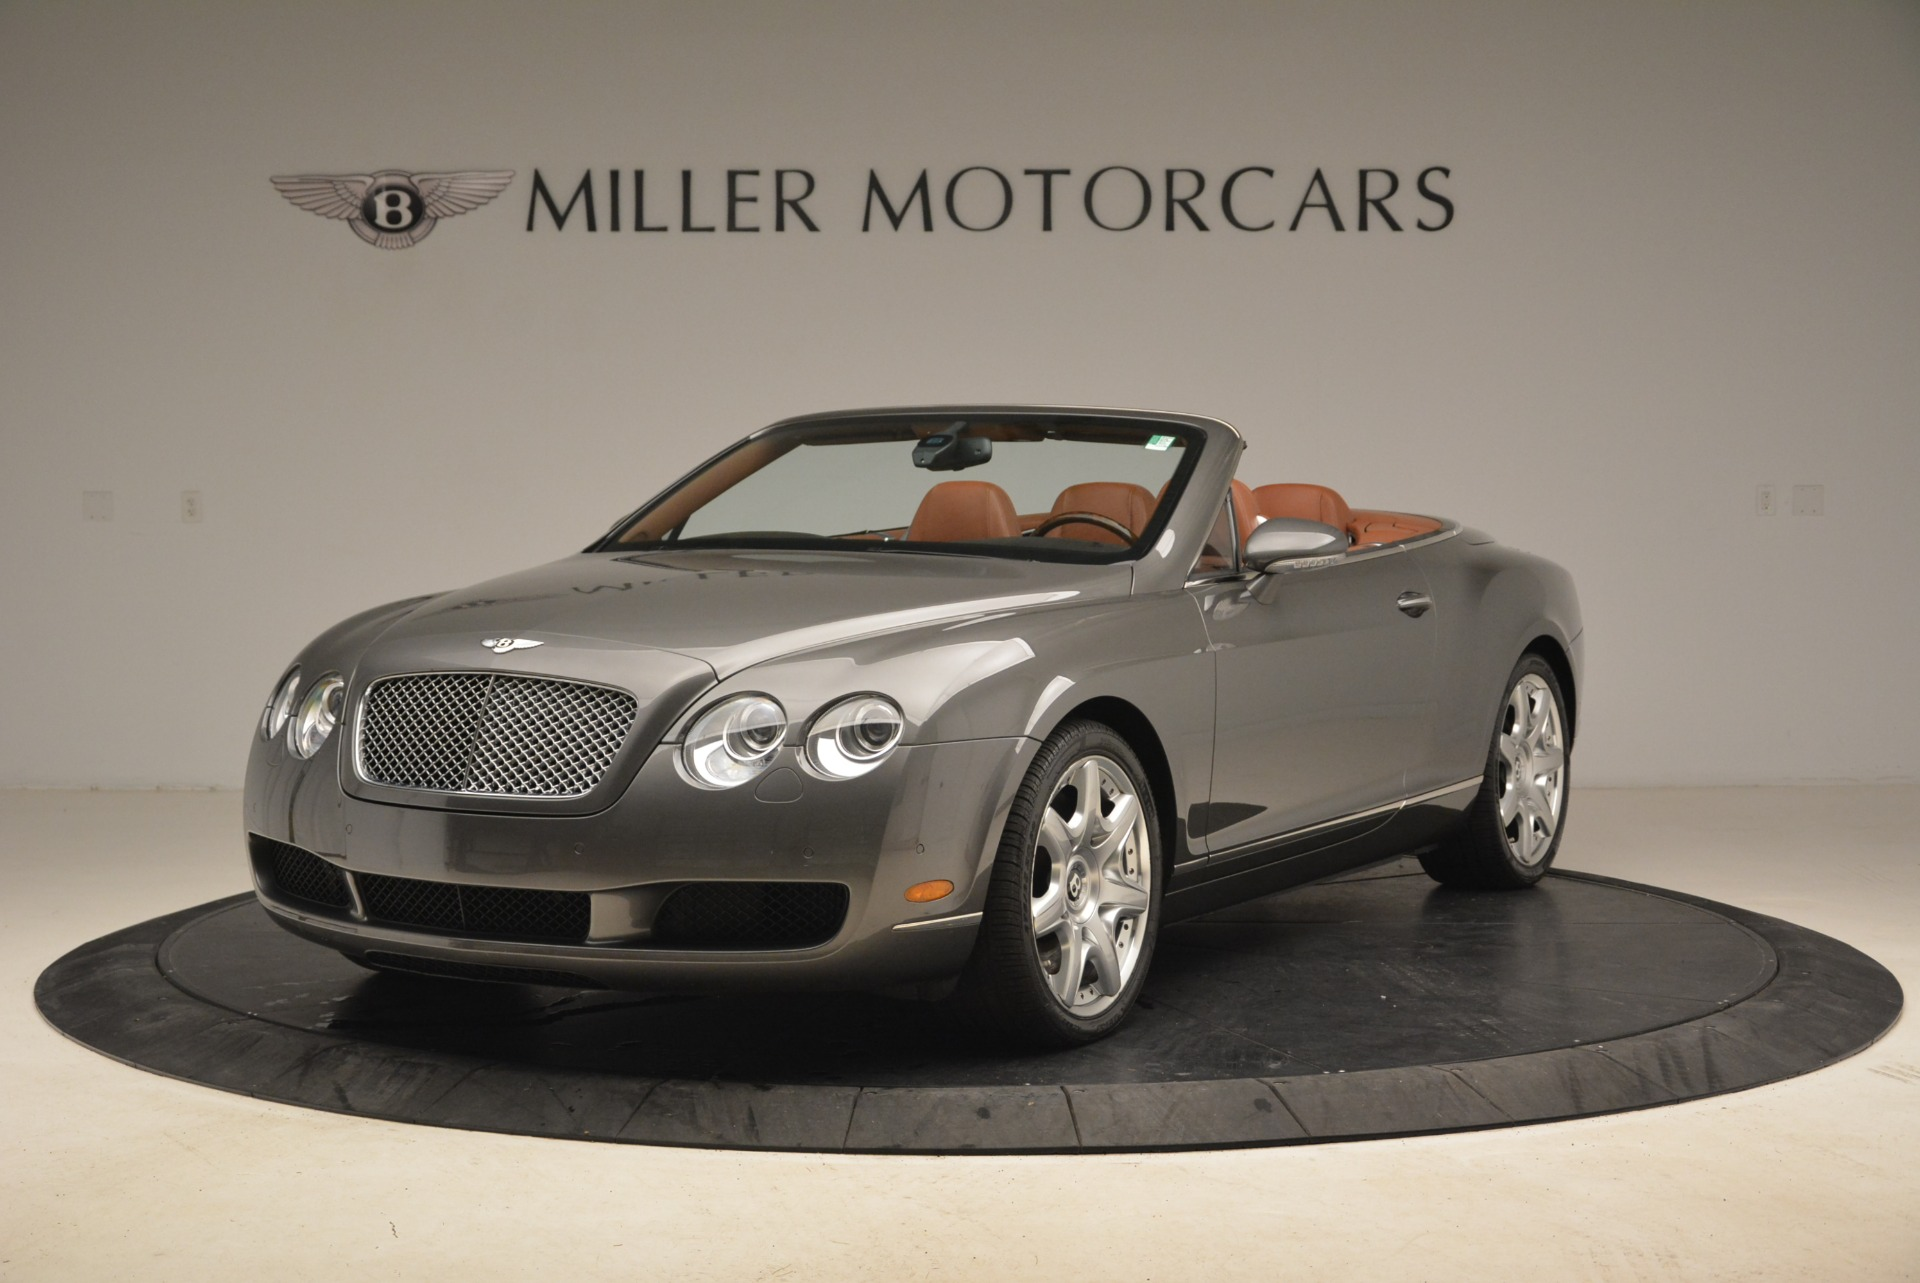 Used 2008 Bentley Continental GT W12 for sale Sold at McLaren Greenwich in Greenwich CT 06830 1